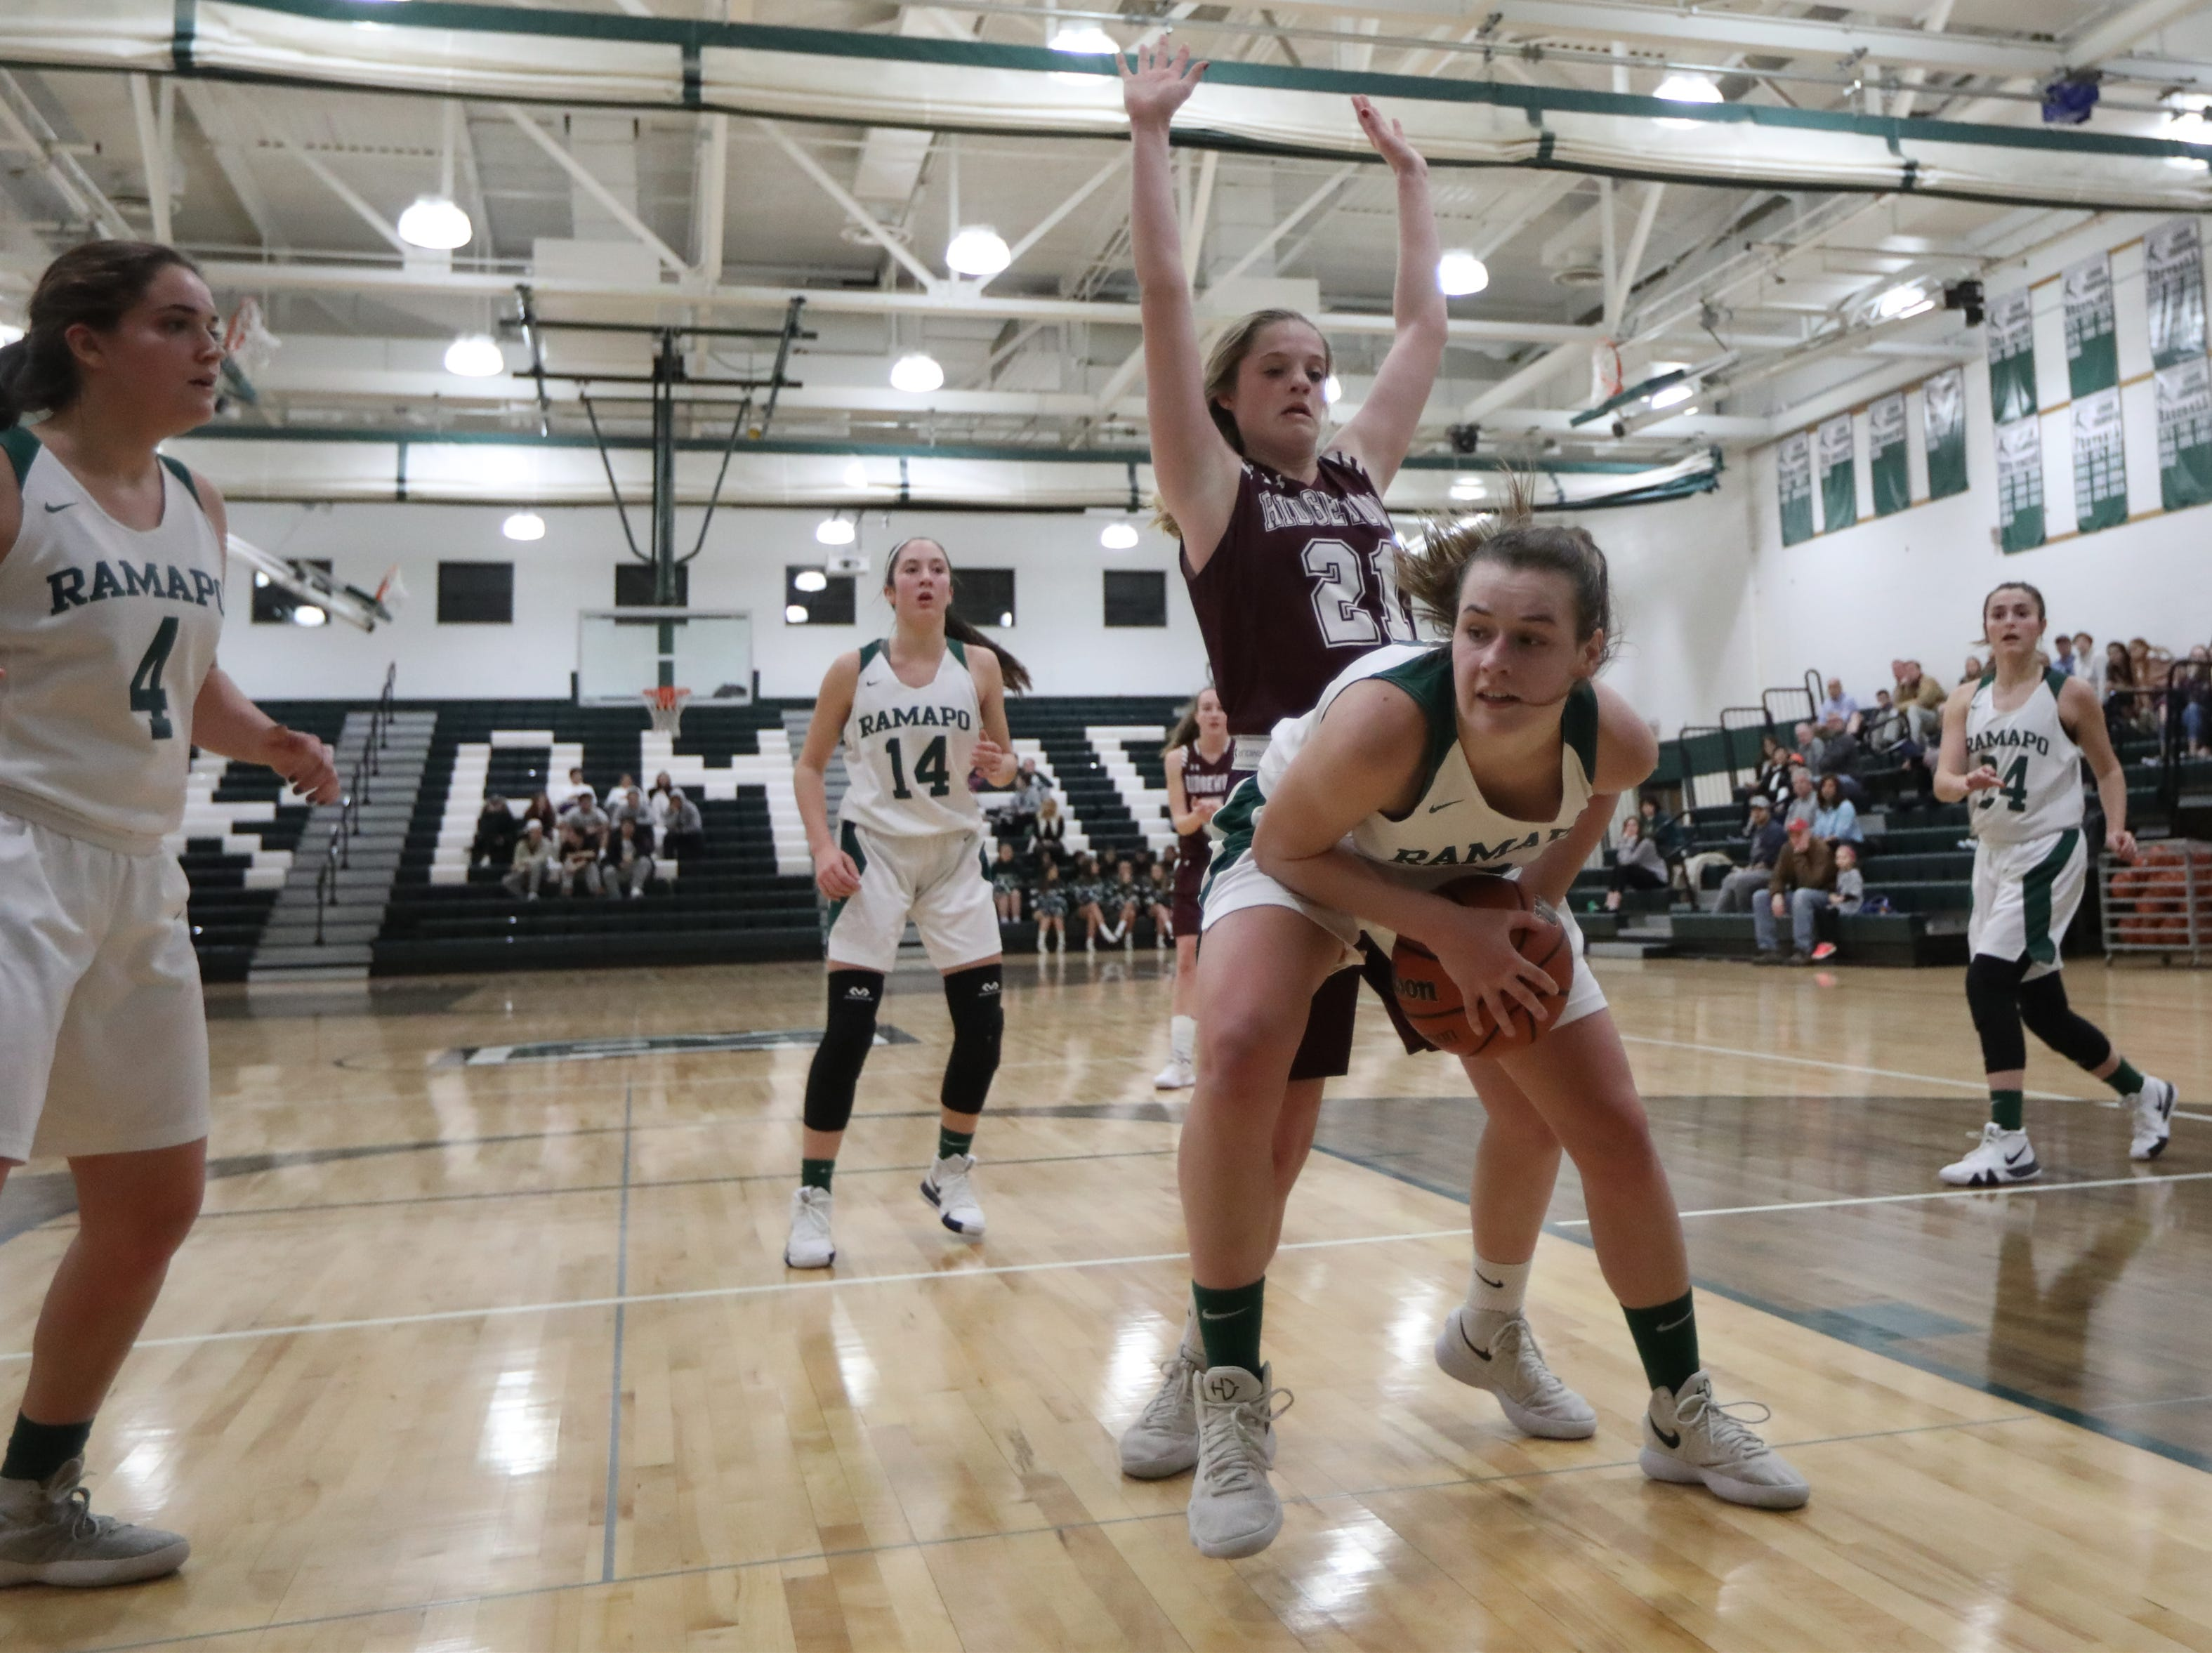 Laurren Achter, of Ramapo, holds onto the ball in front of . Chloe Lennon, of Ridgewood. Thursday, January 10,  2019